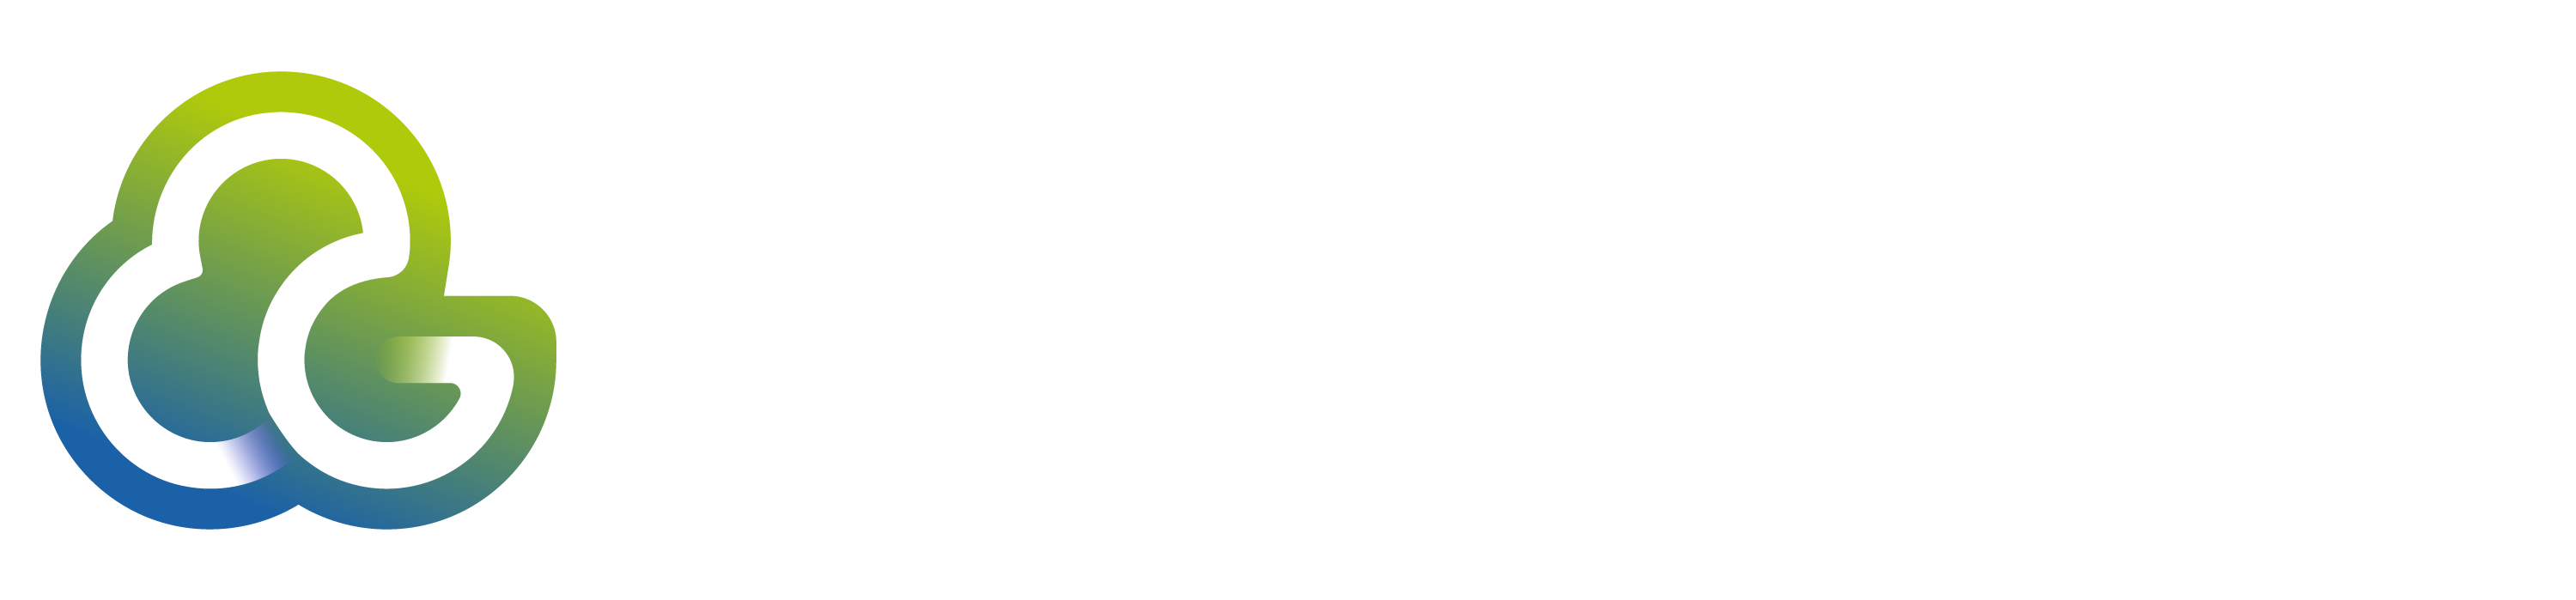 Colorfull-Logo-with-white-text-text